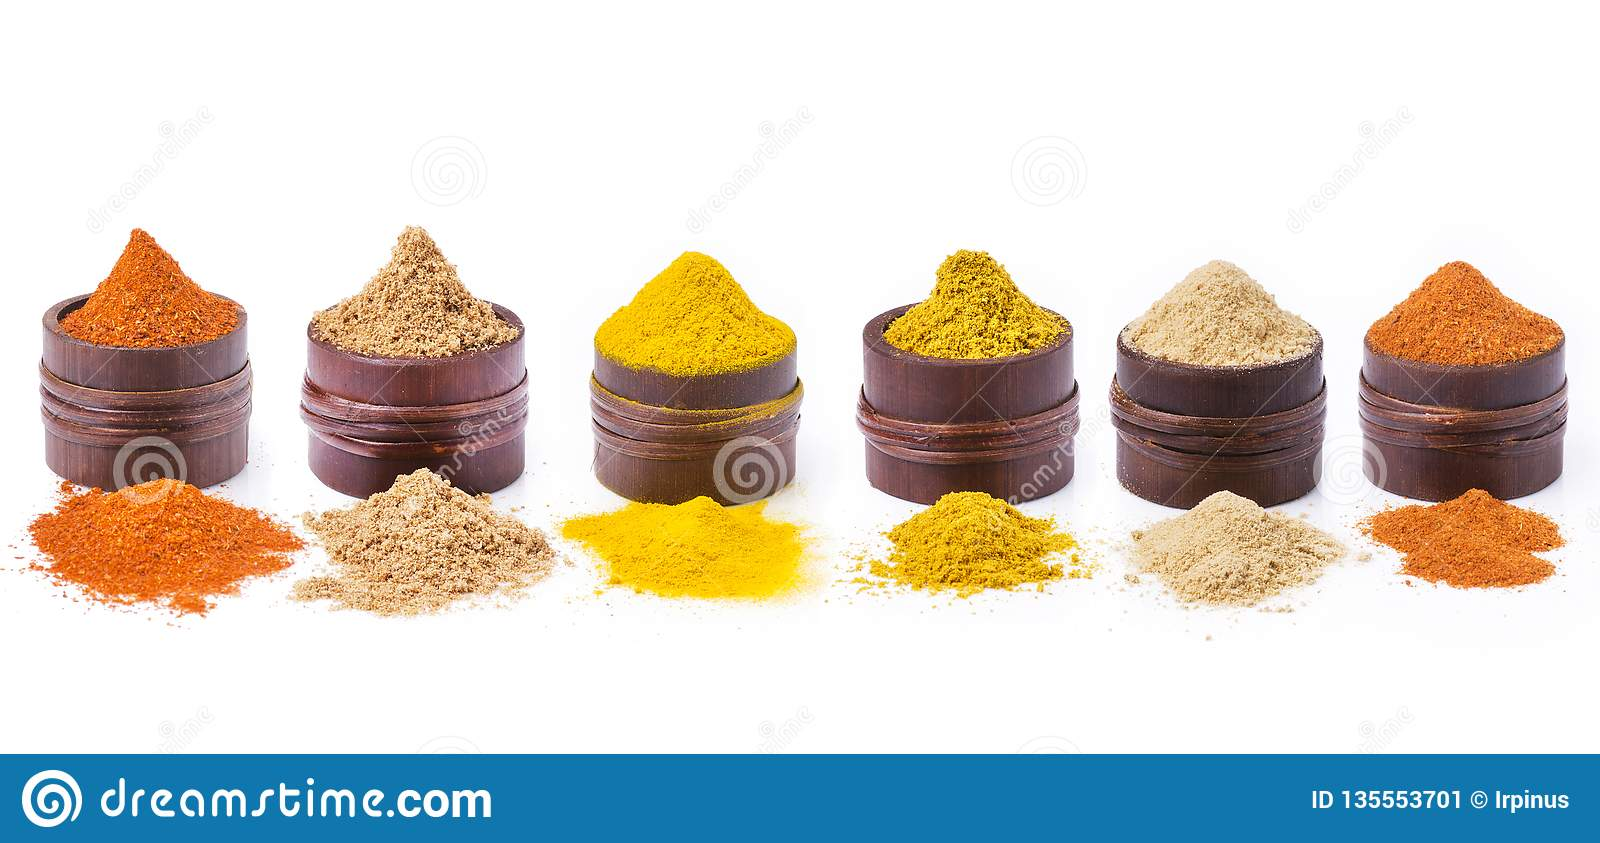 Types of spices, colors and flavors